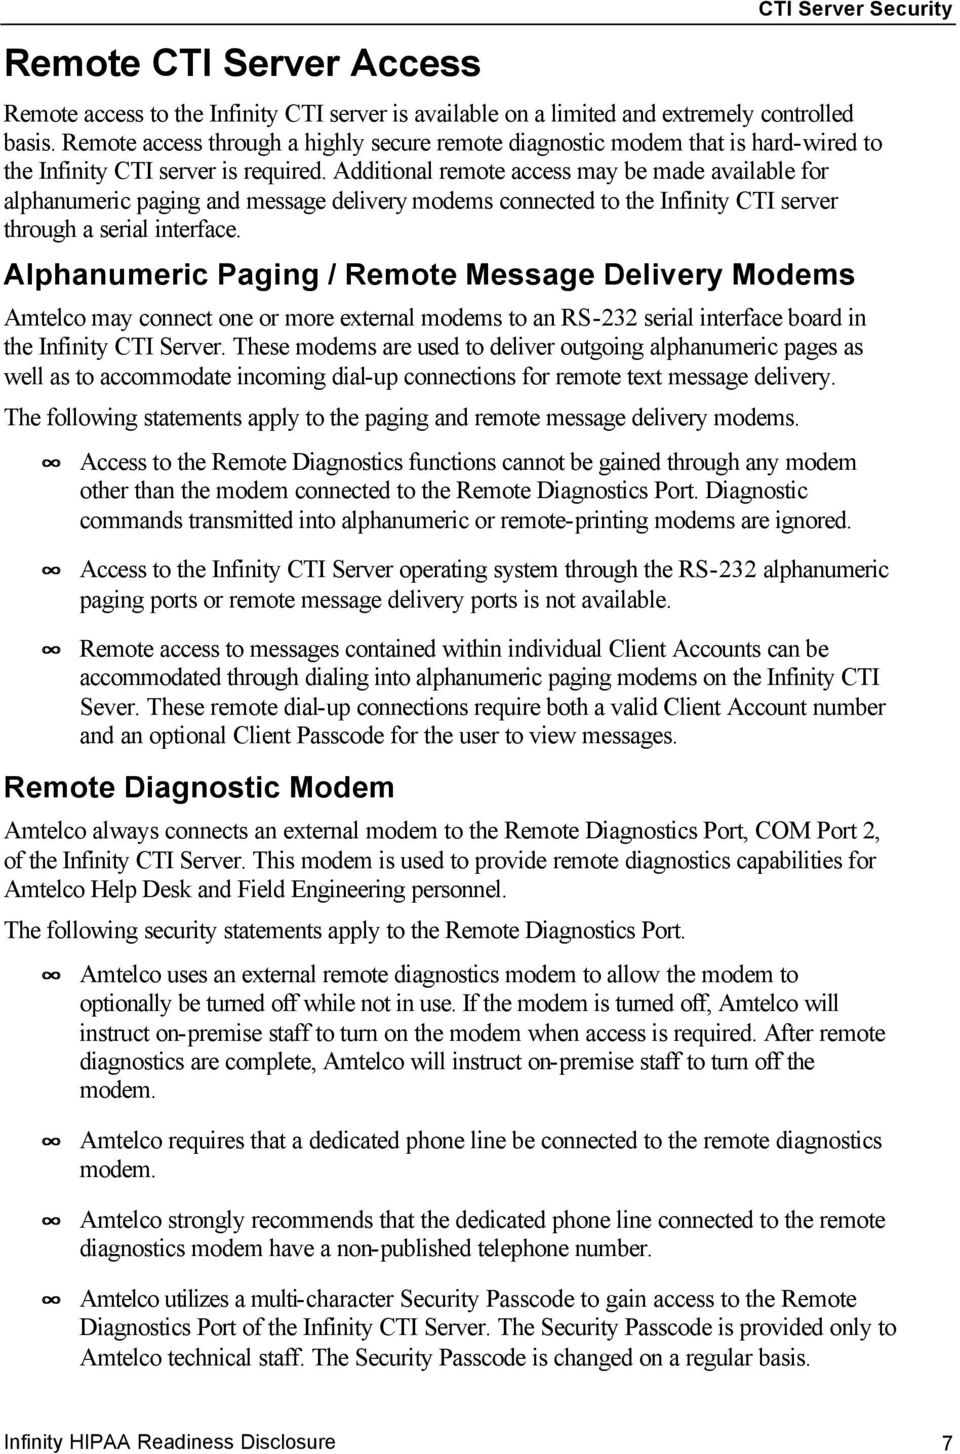 Additional remote access may be made available for alphanumeric paging and message delivery modems connected to the Infinity CTI server through a serial interface.